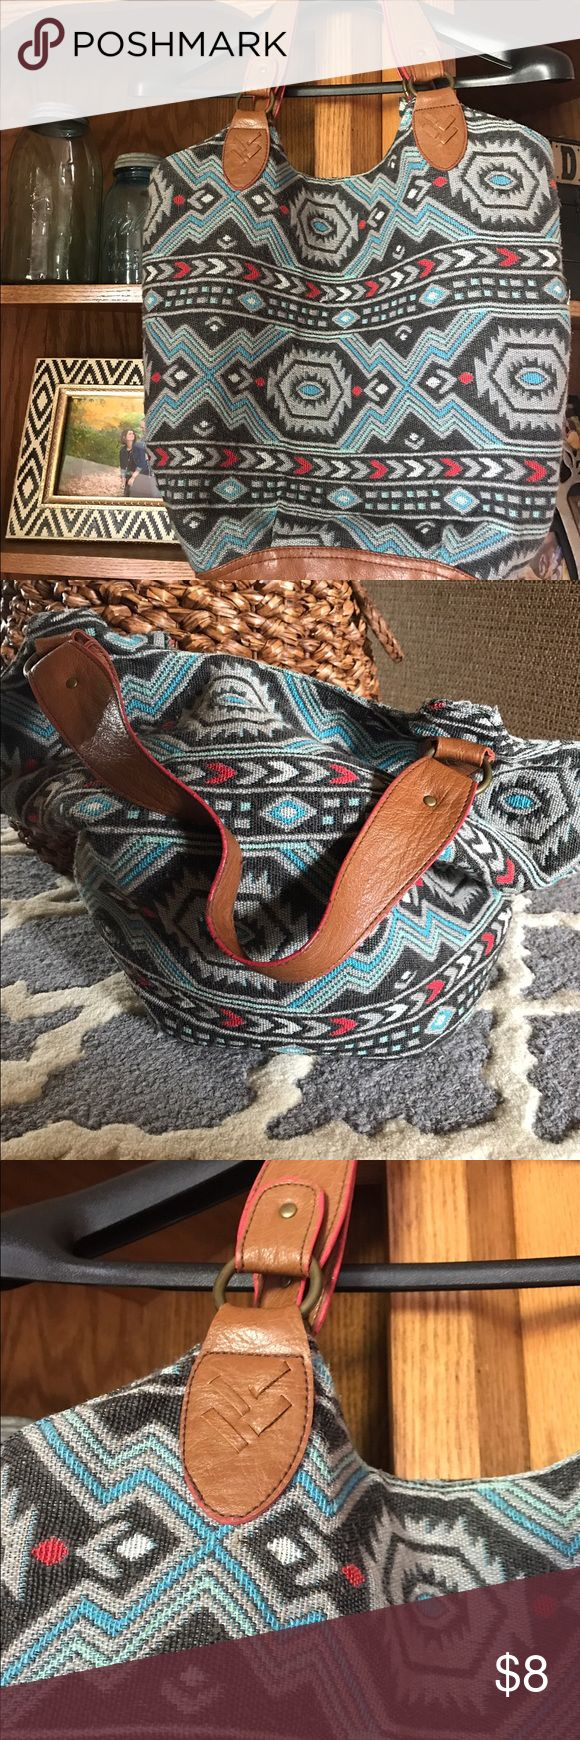 American eagle tribal print handbag American eagle tribal print handbag. Older style but in great shape. Handles and bottom are intact with no rips/tears/stains. American Eagle Outfitters Bags Shoulder Bags